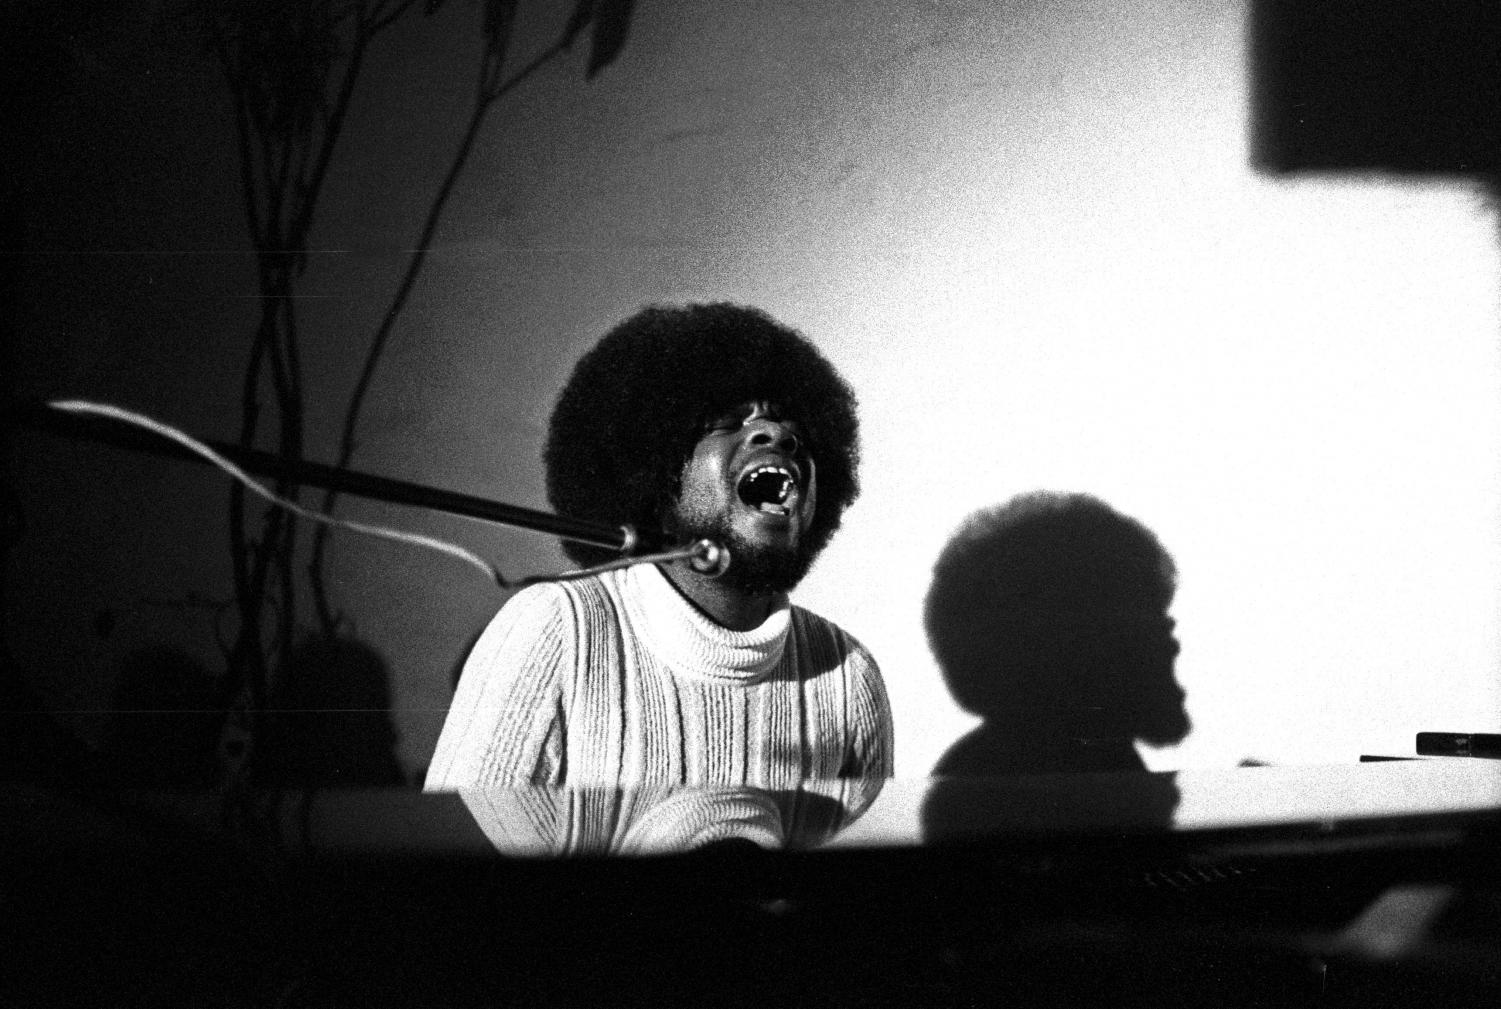 Passionately singing to one of his songs, Billy Preston plays the keyboard.